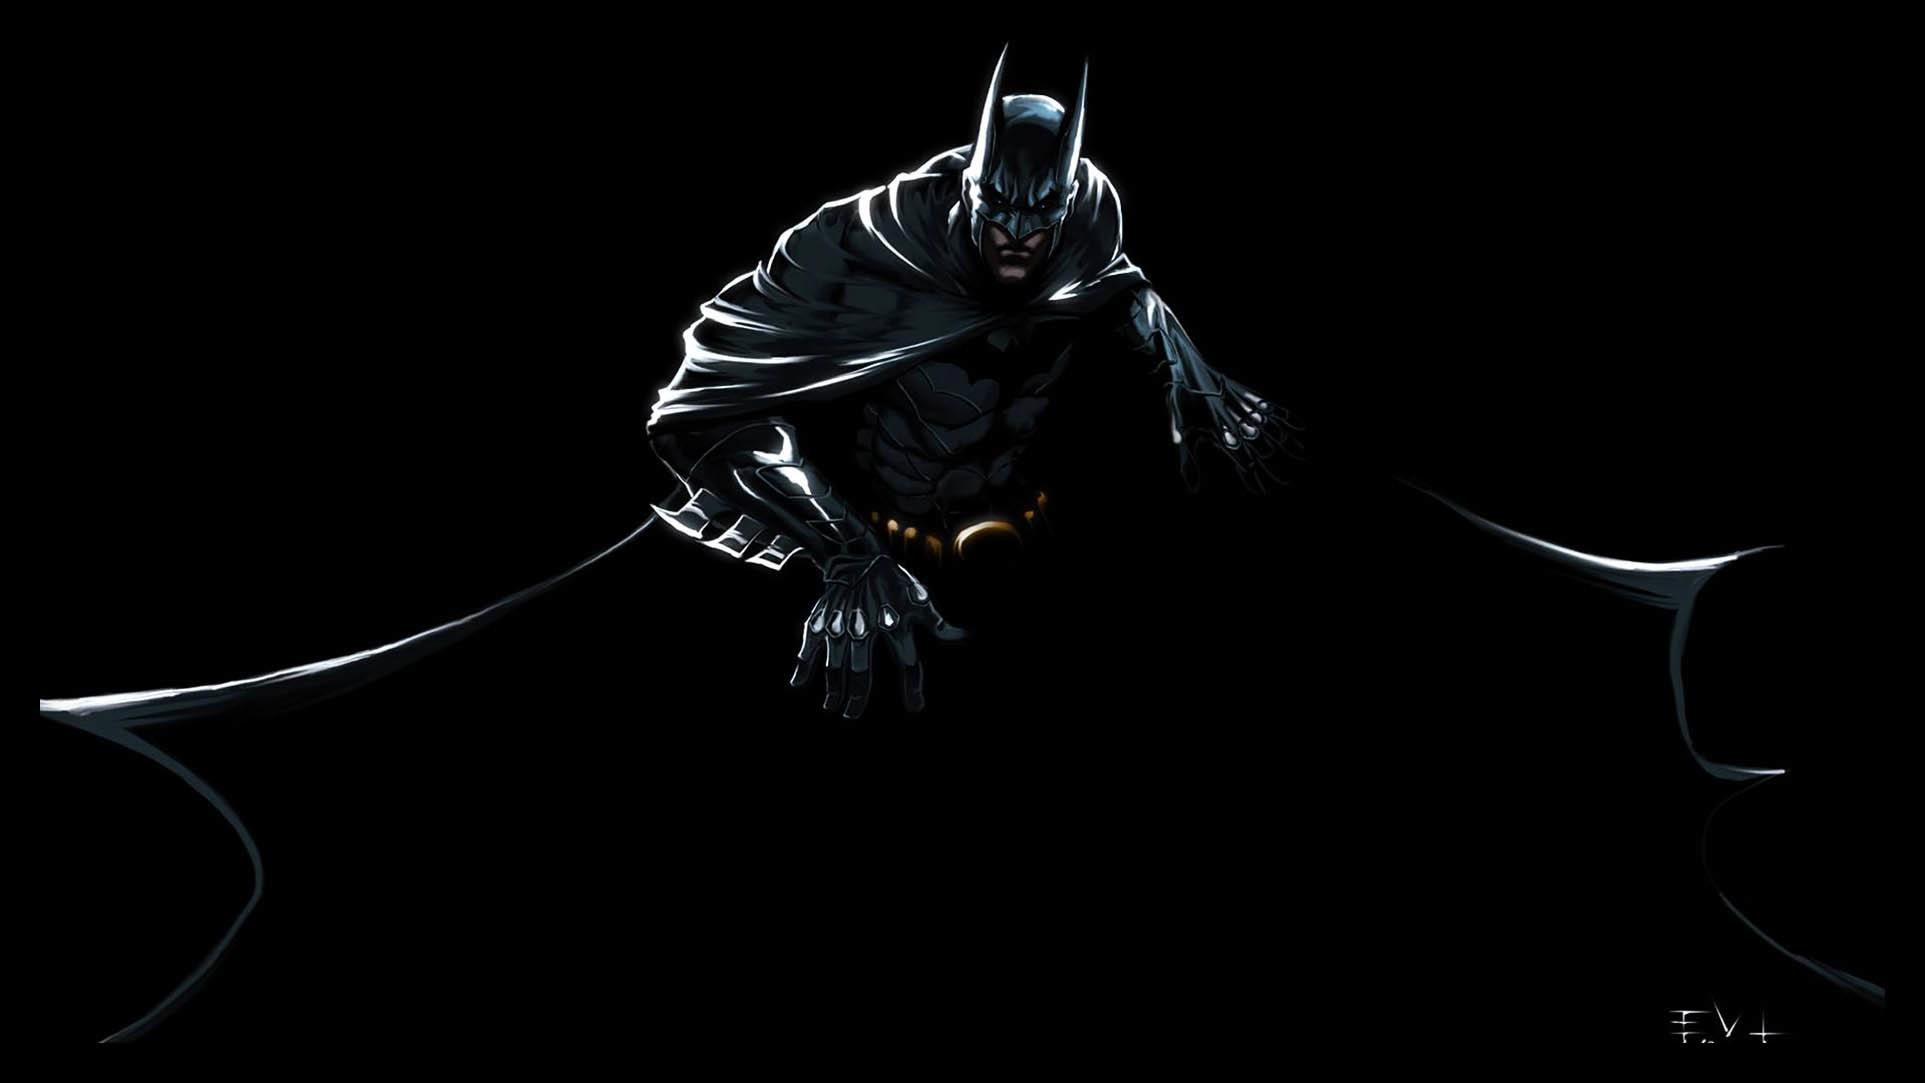 1925x1083 Wallpaper Images for batman the killing joke wallpaper HD Wallpapers .